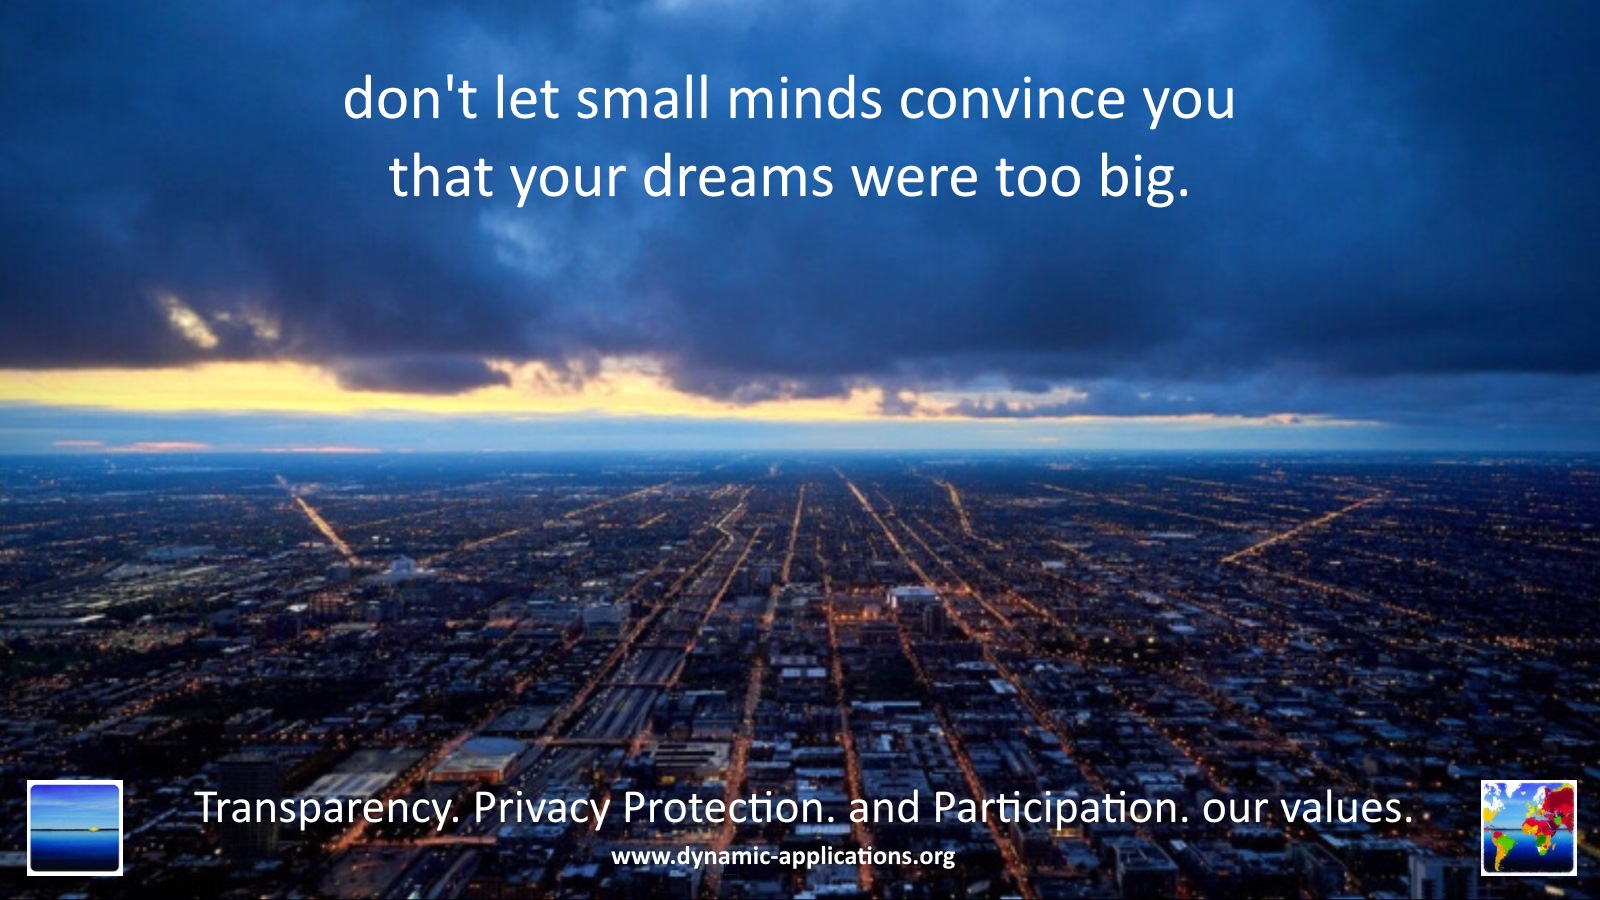 don't let small minds convince you that your dreams were too big. Transparency. Privacy protection. and Participation. our values.